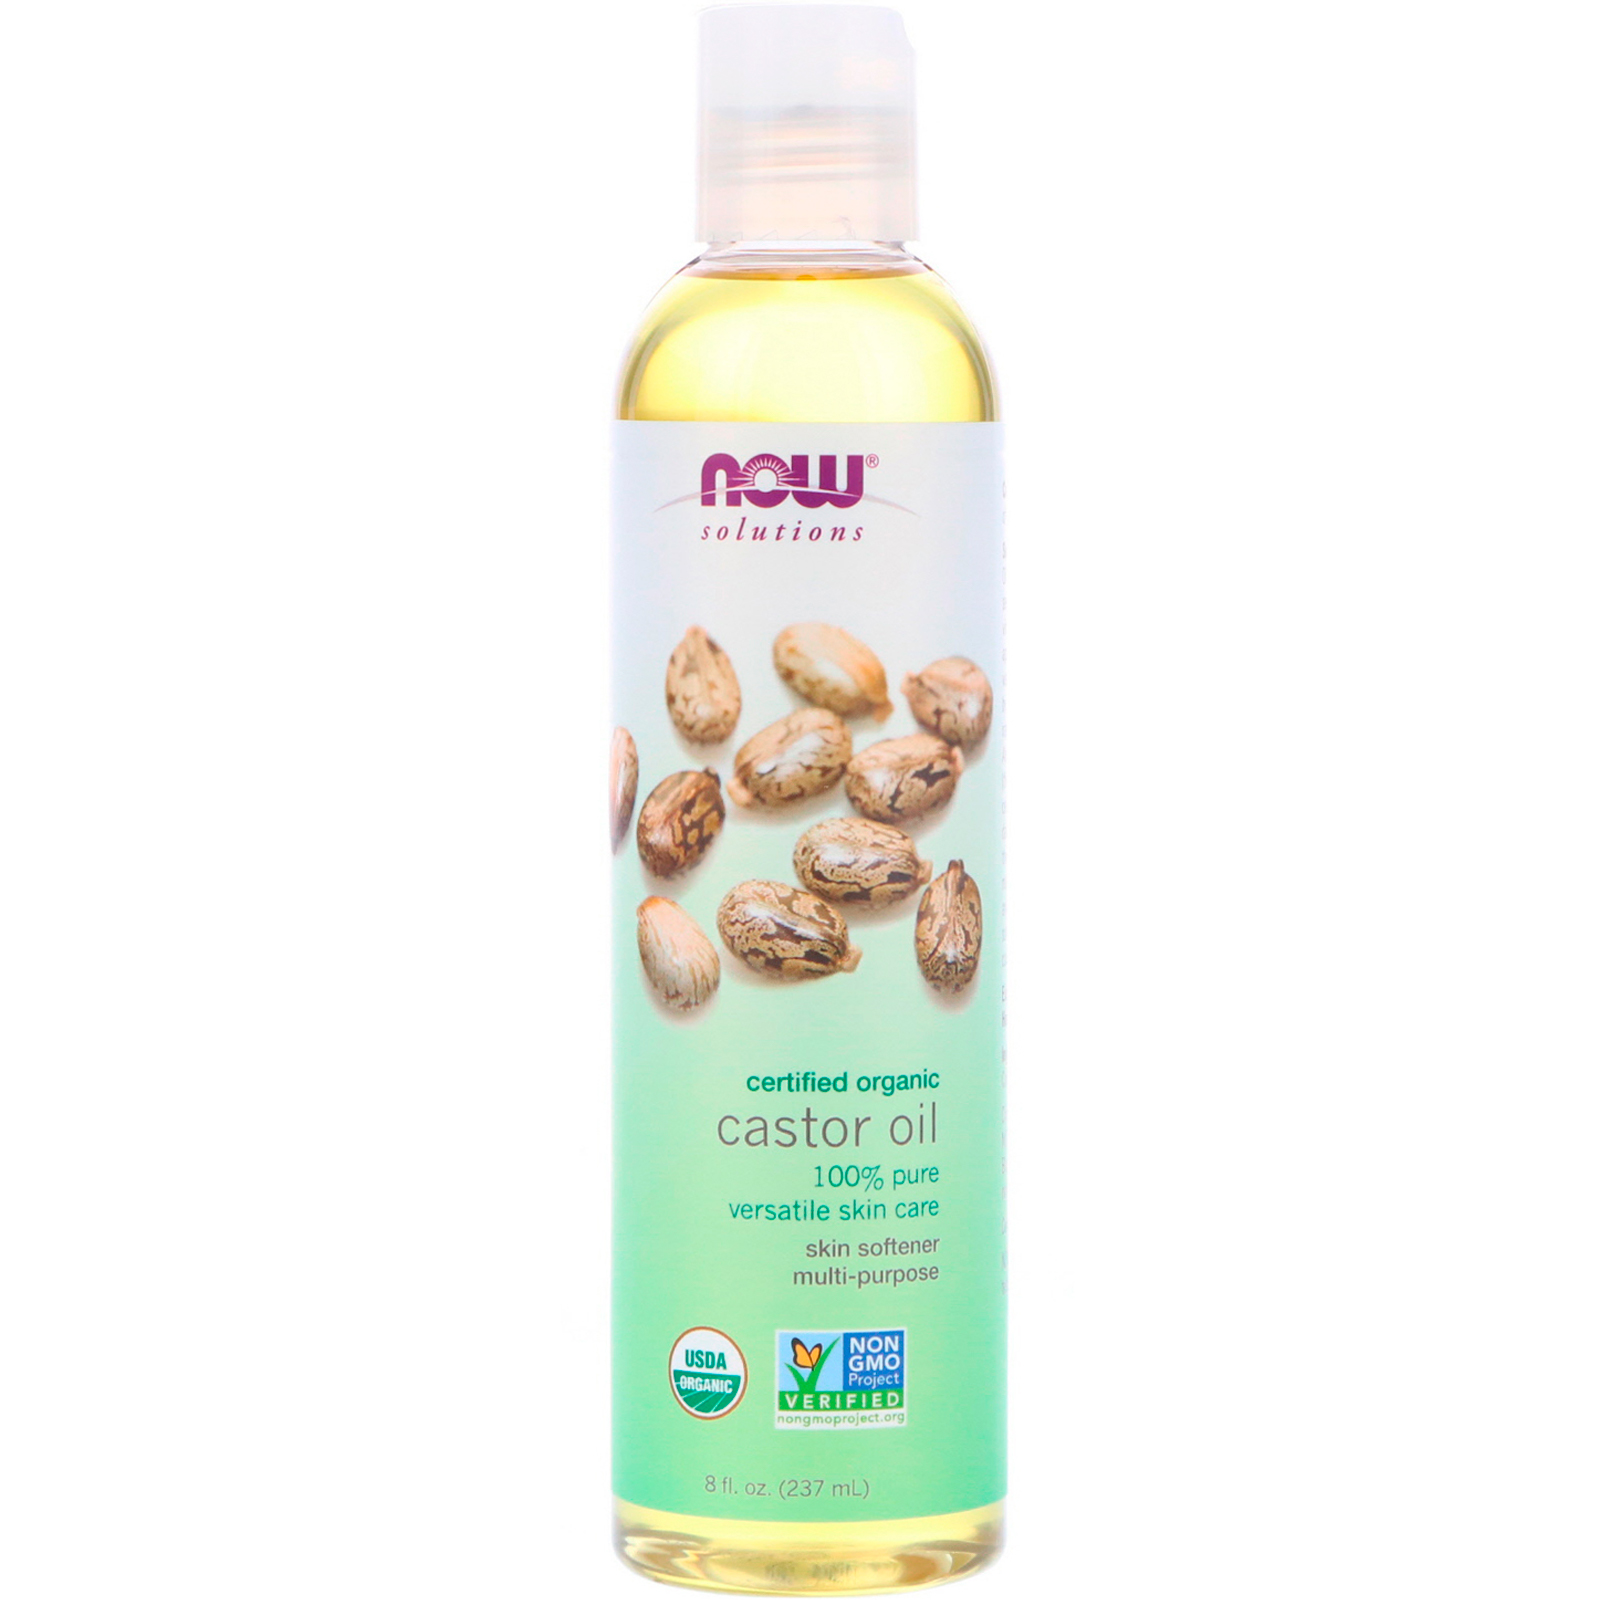 100% Pure Versatile Skin Care Castor Oil - 4 fl. oz. by NOW Foods (pack of 6) Nip + Fab Bee Sting Fix Lifting Mask - 50 ml / 1.7 Fl oz